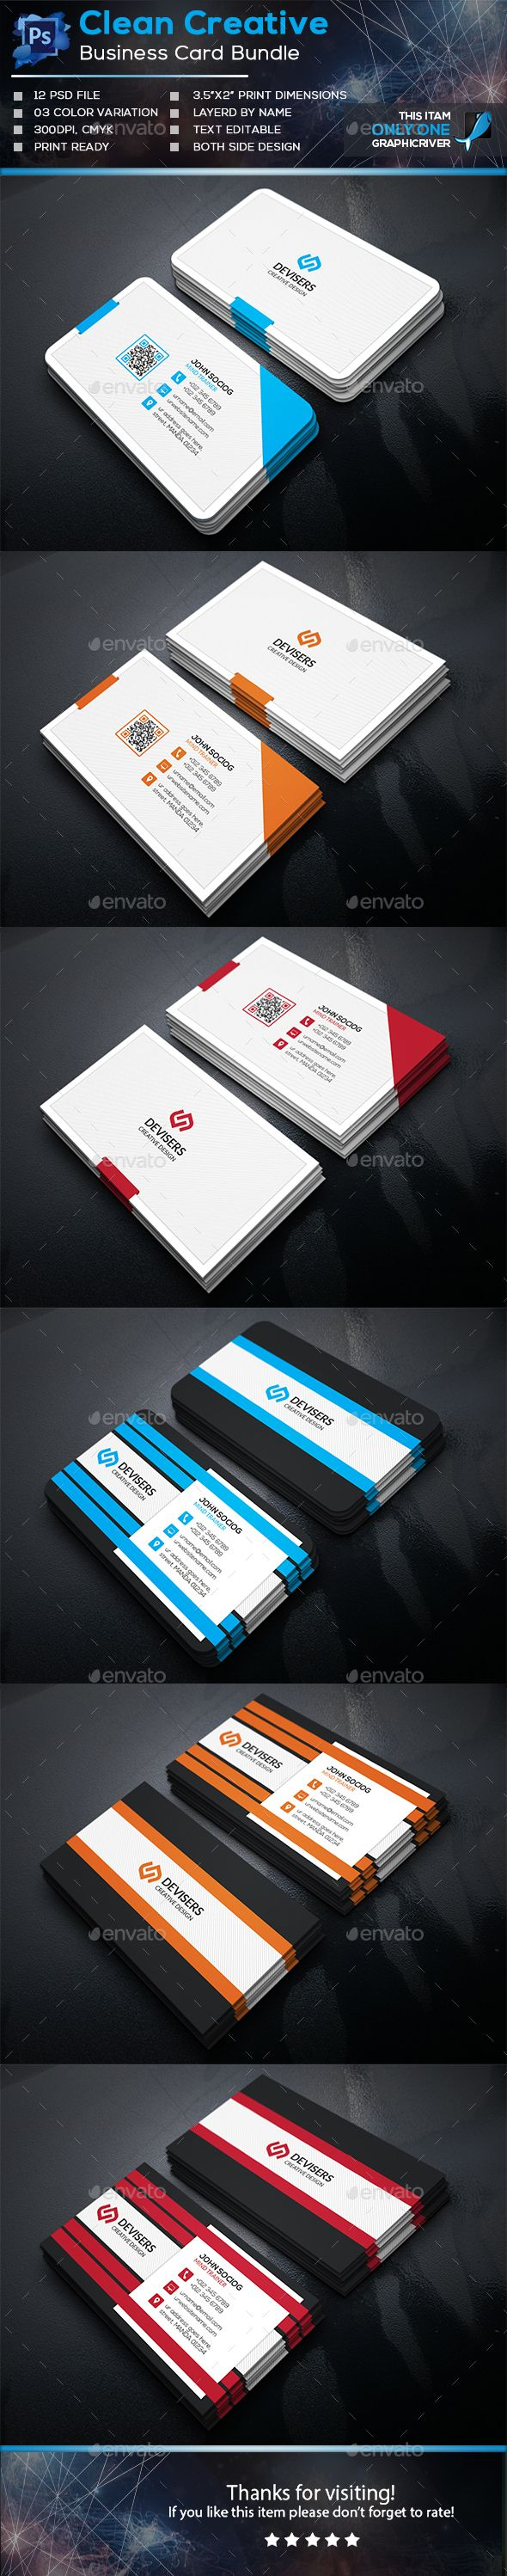 1399 Best Business Card Images On Pinterest